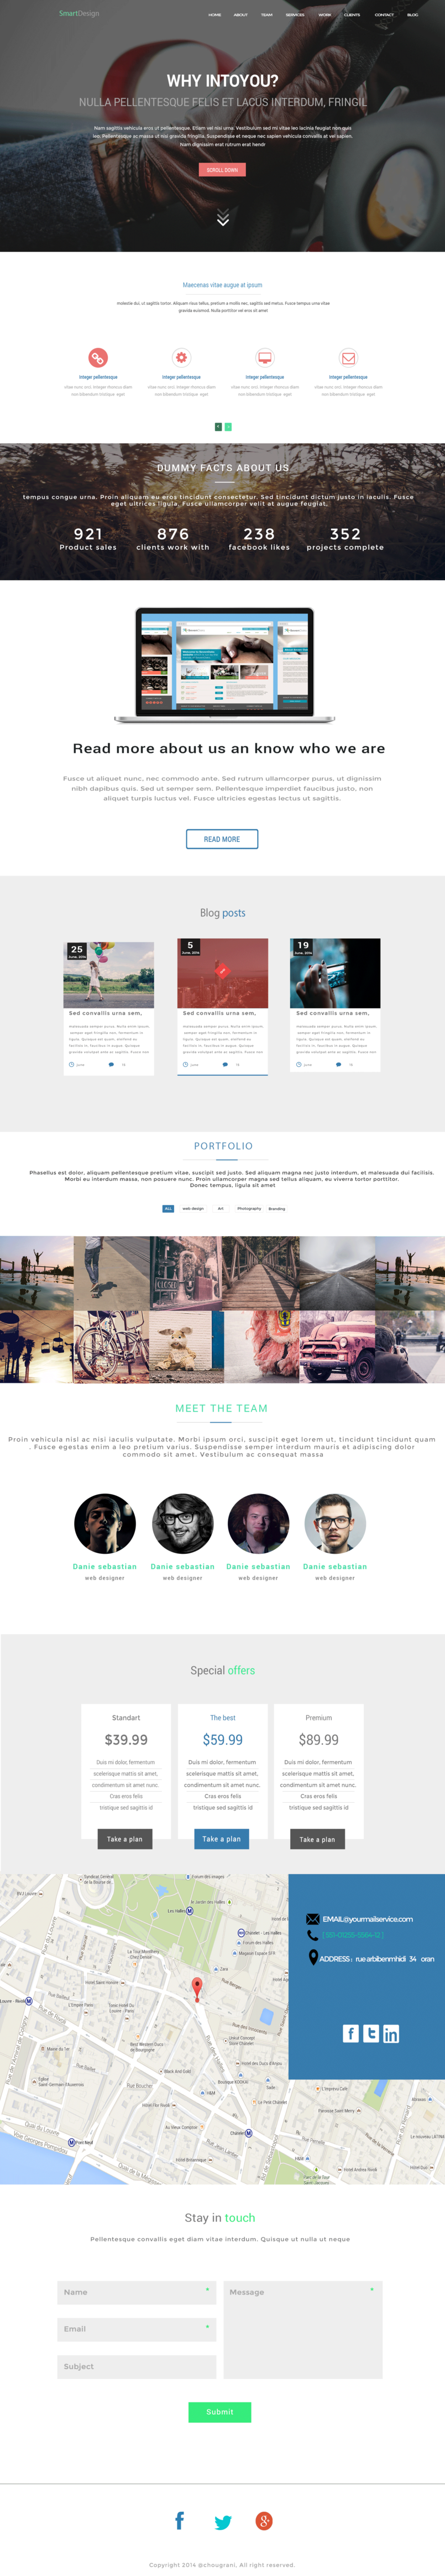 Yourinto-one page template